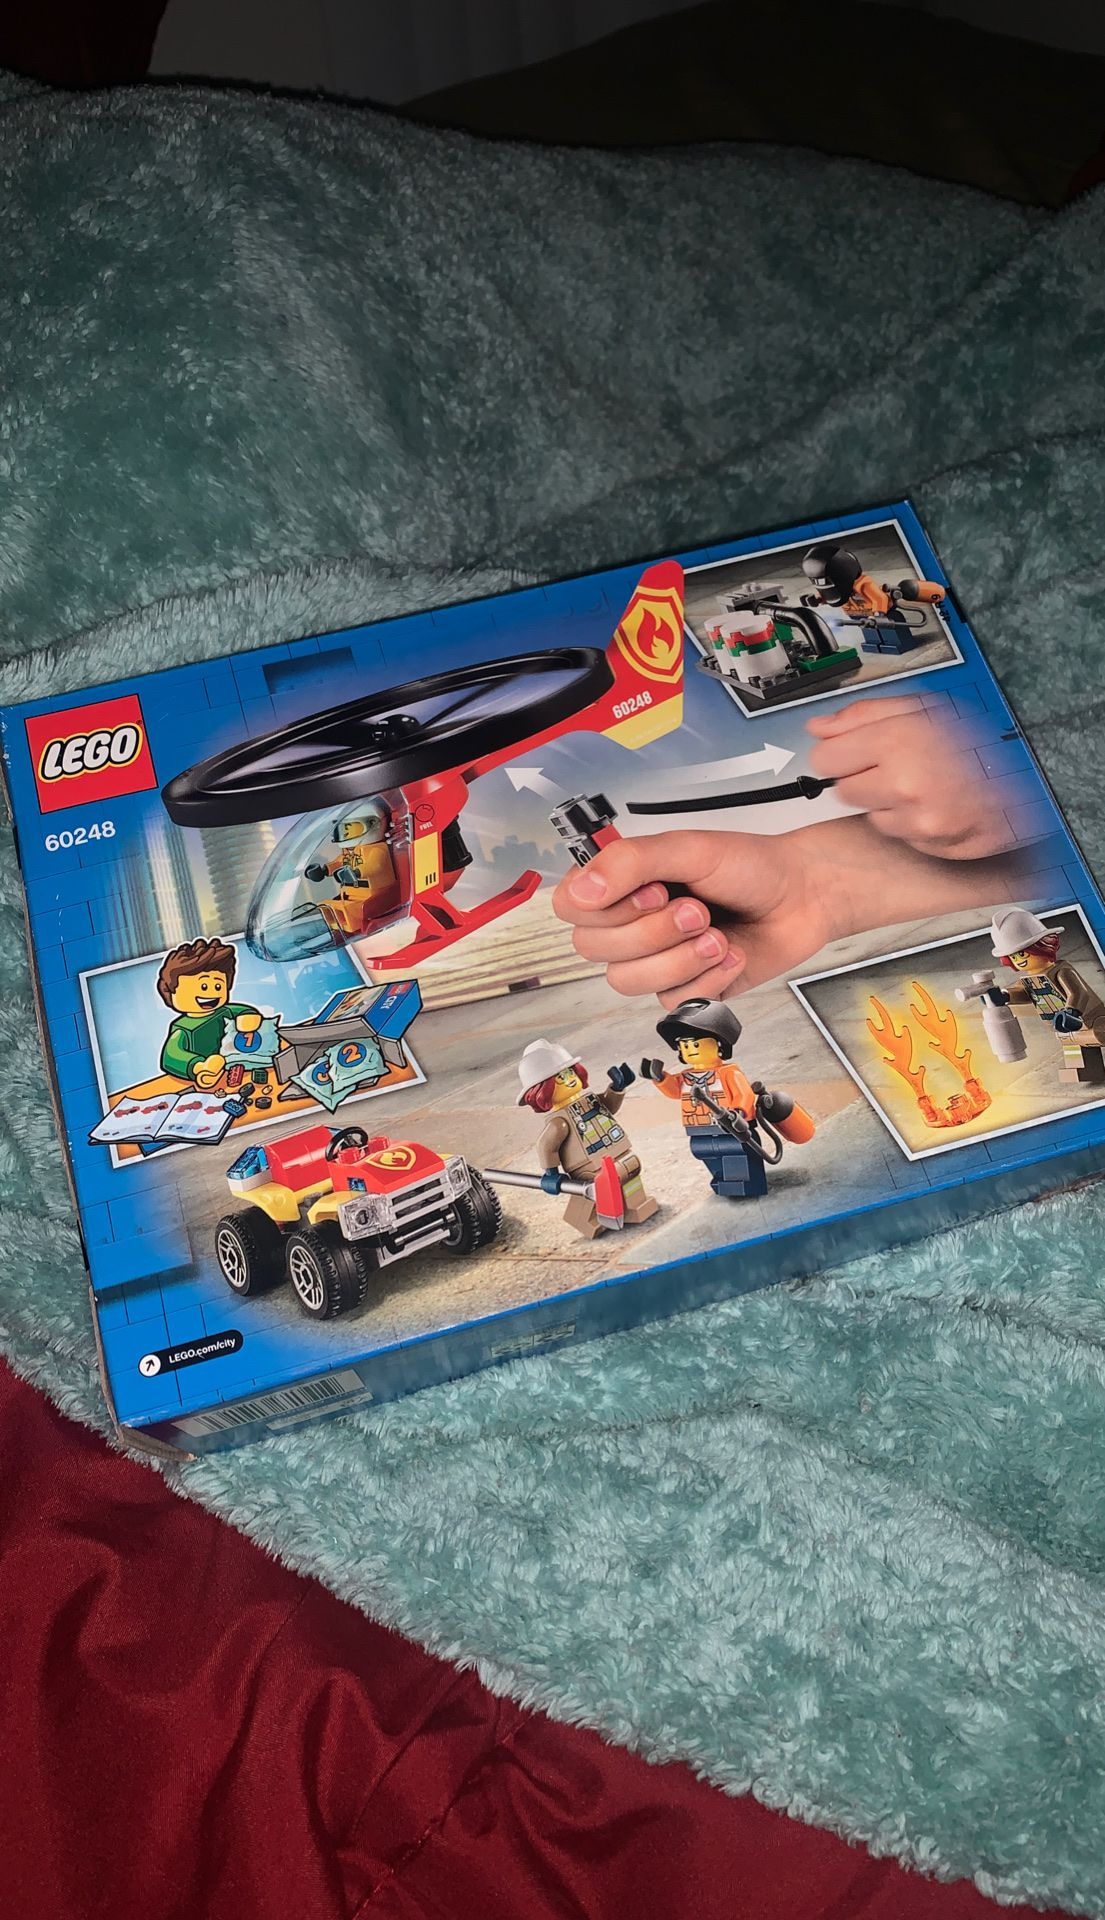 LEGO City Fire Helicopter Response 60248. NEW!